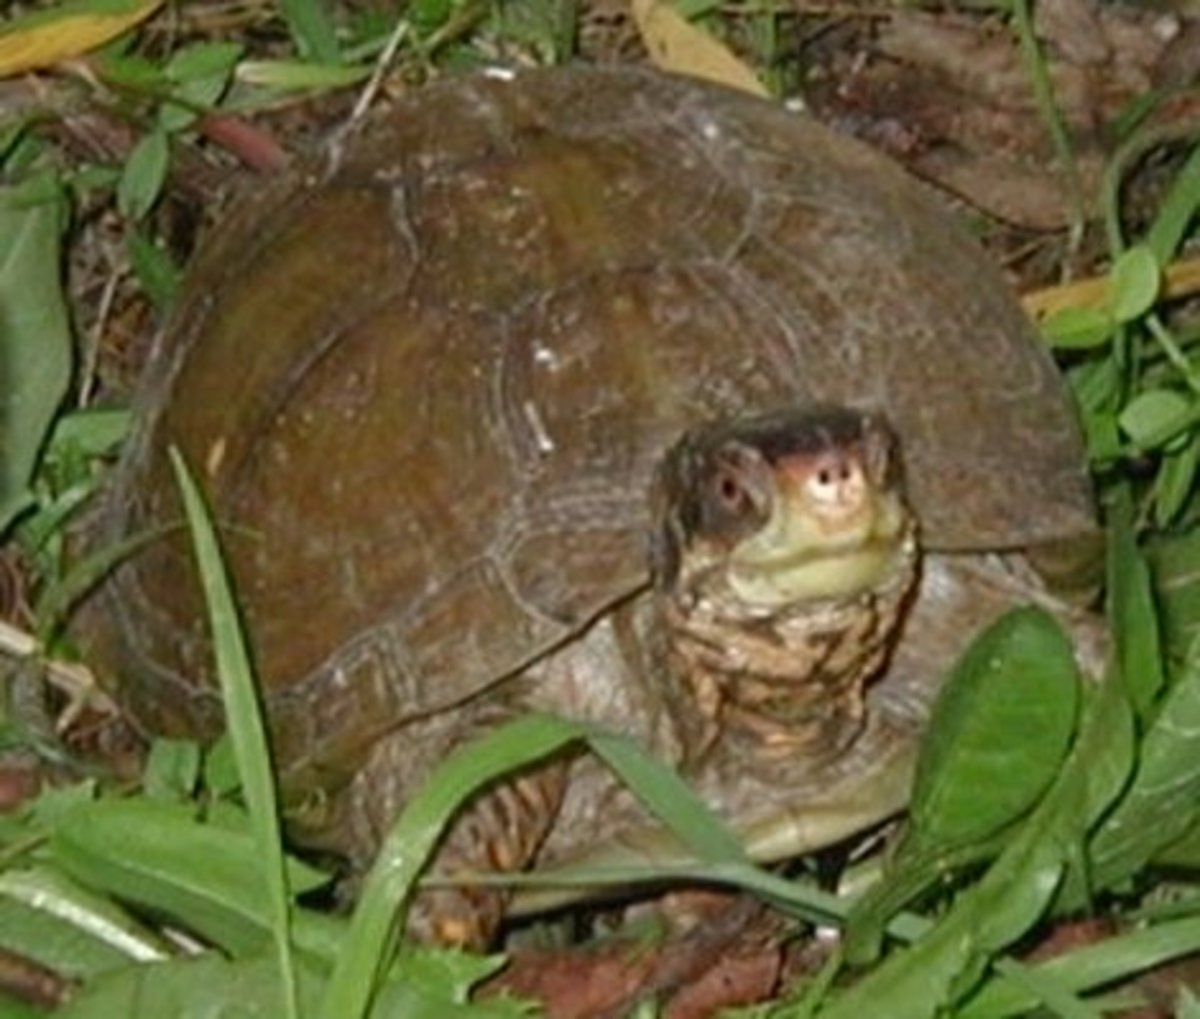 This is a Carolina Three Toed Box Turtle